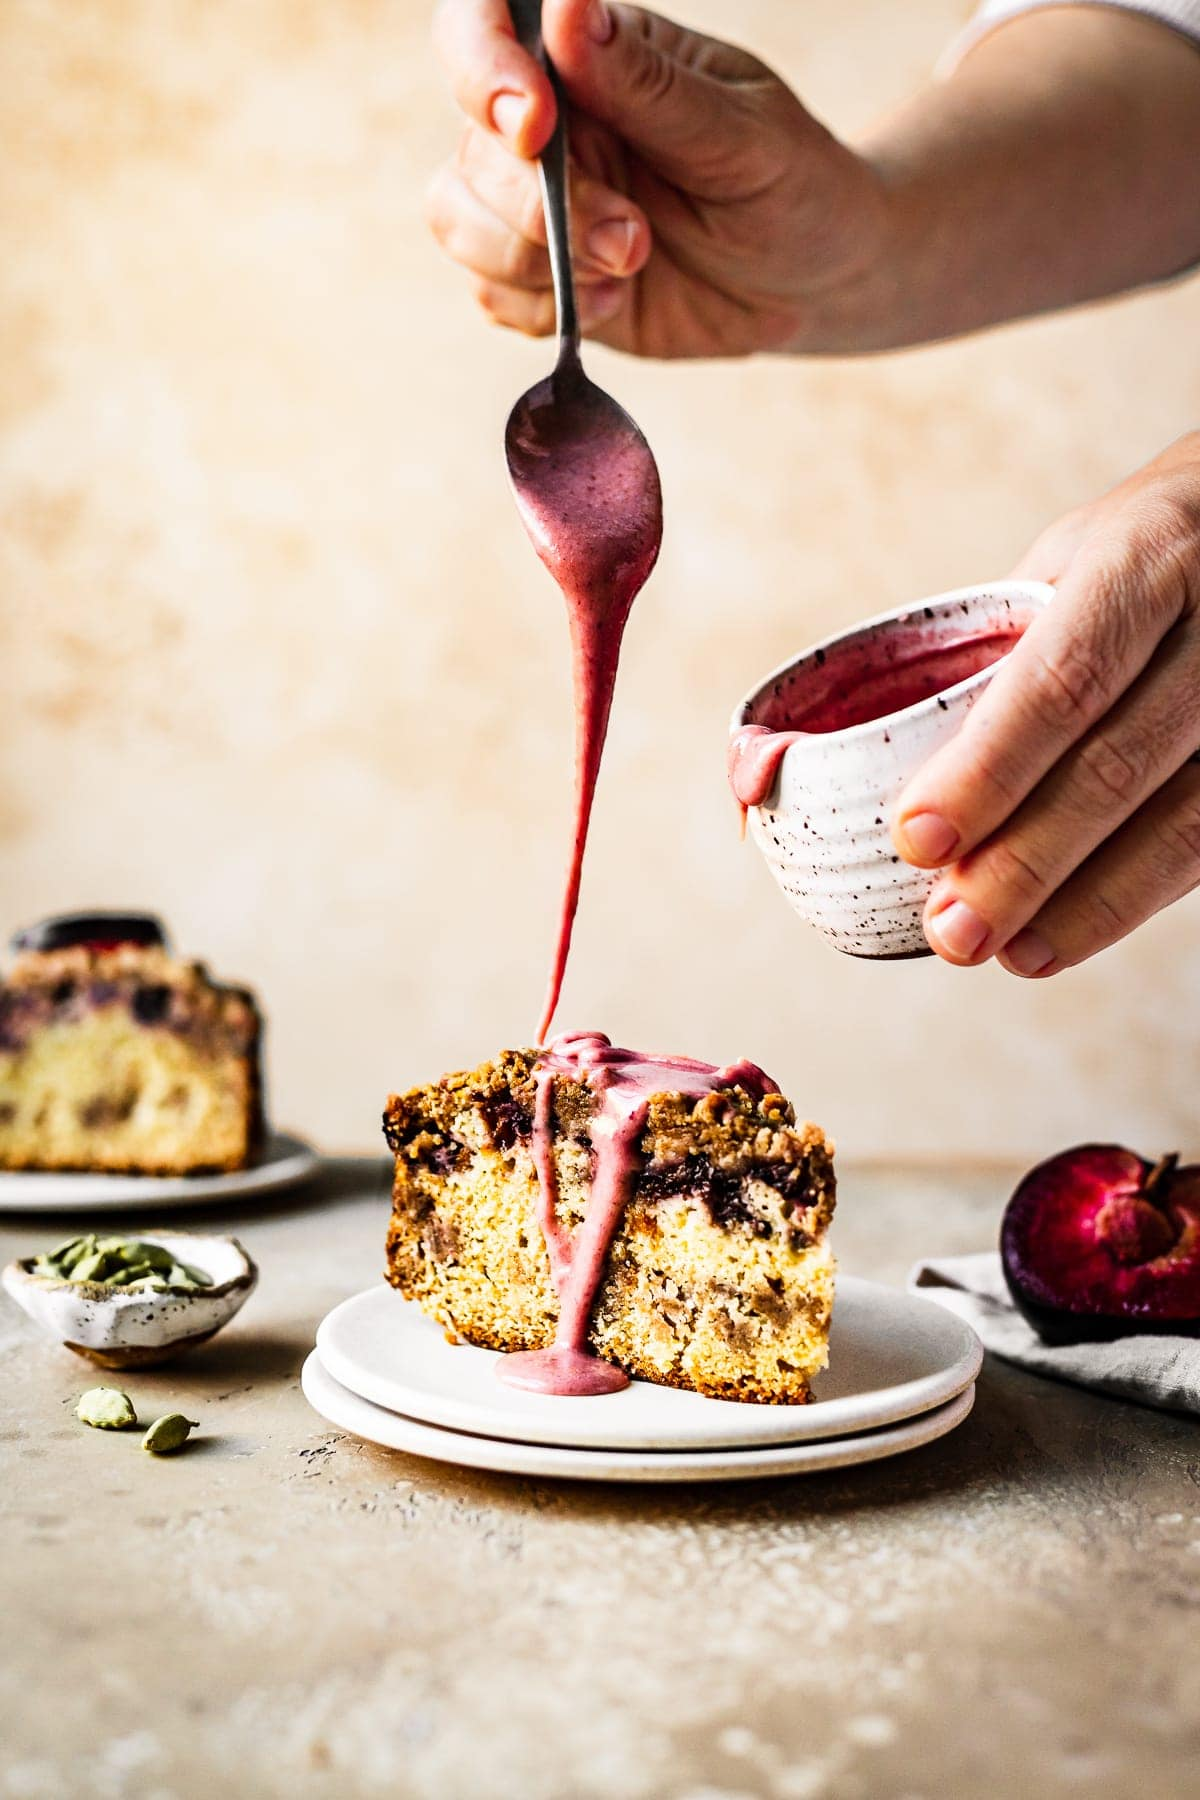 Hands reach into the frame drizzling a spoonful of pink glaze onto a slice of coffee cake. The other hand holds a white speckled ceramic jar of glaze. The surface and background are both a warm tan color. Resting next to the cake slice is half a plum, a small bowl of cardamom pods, and a slice of cake in the background.